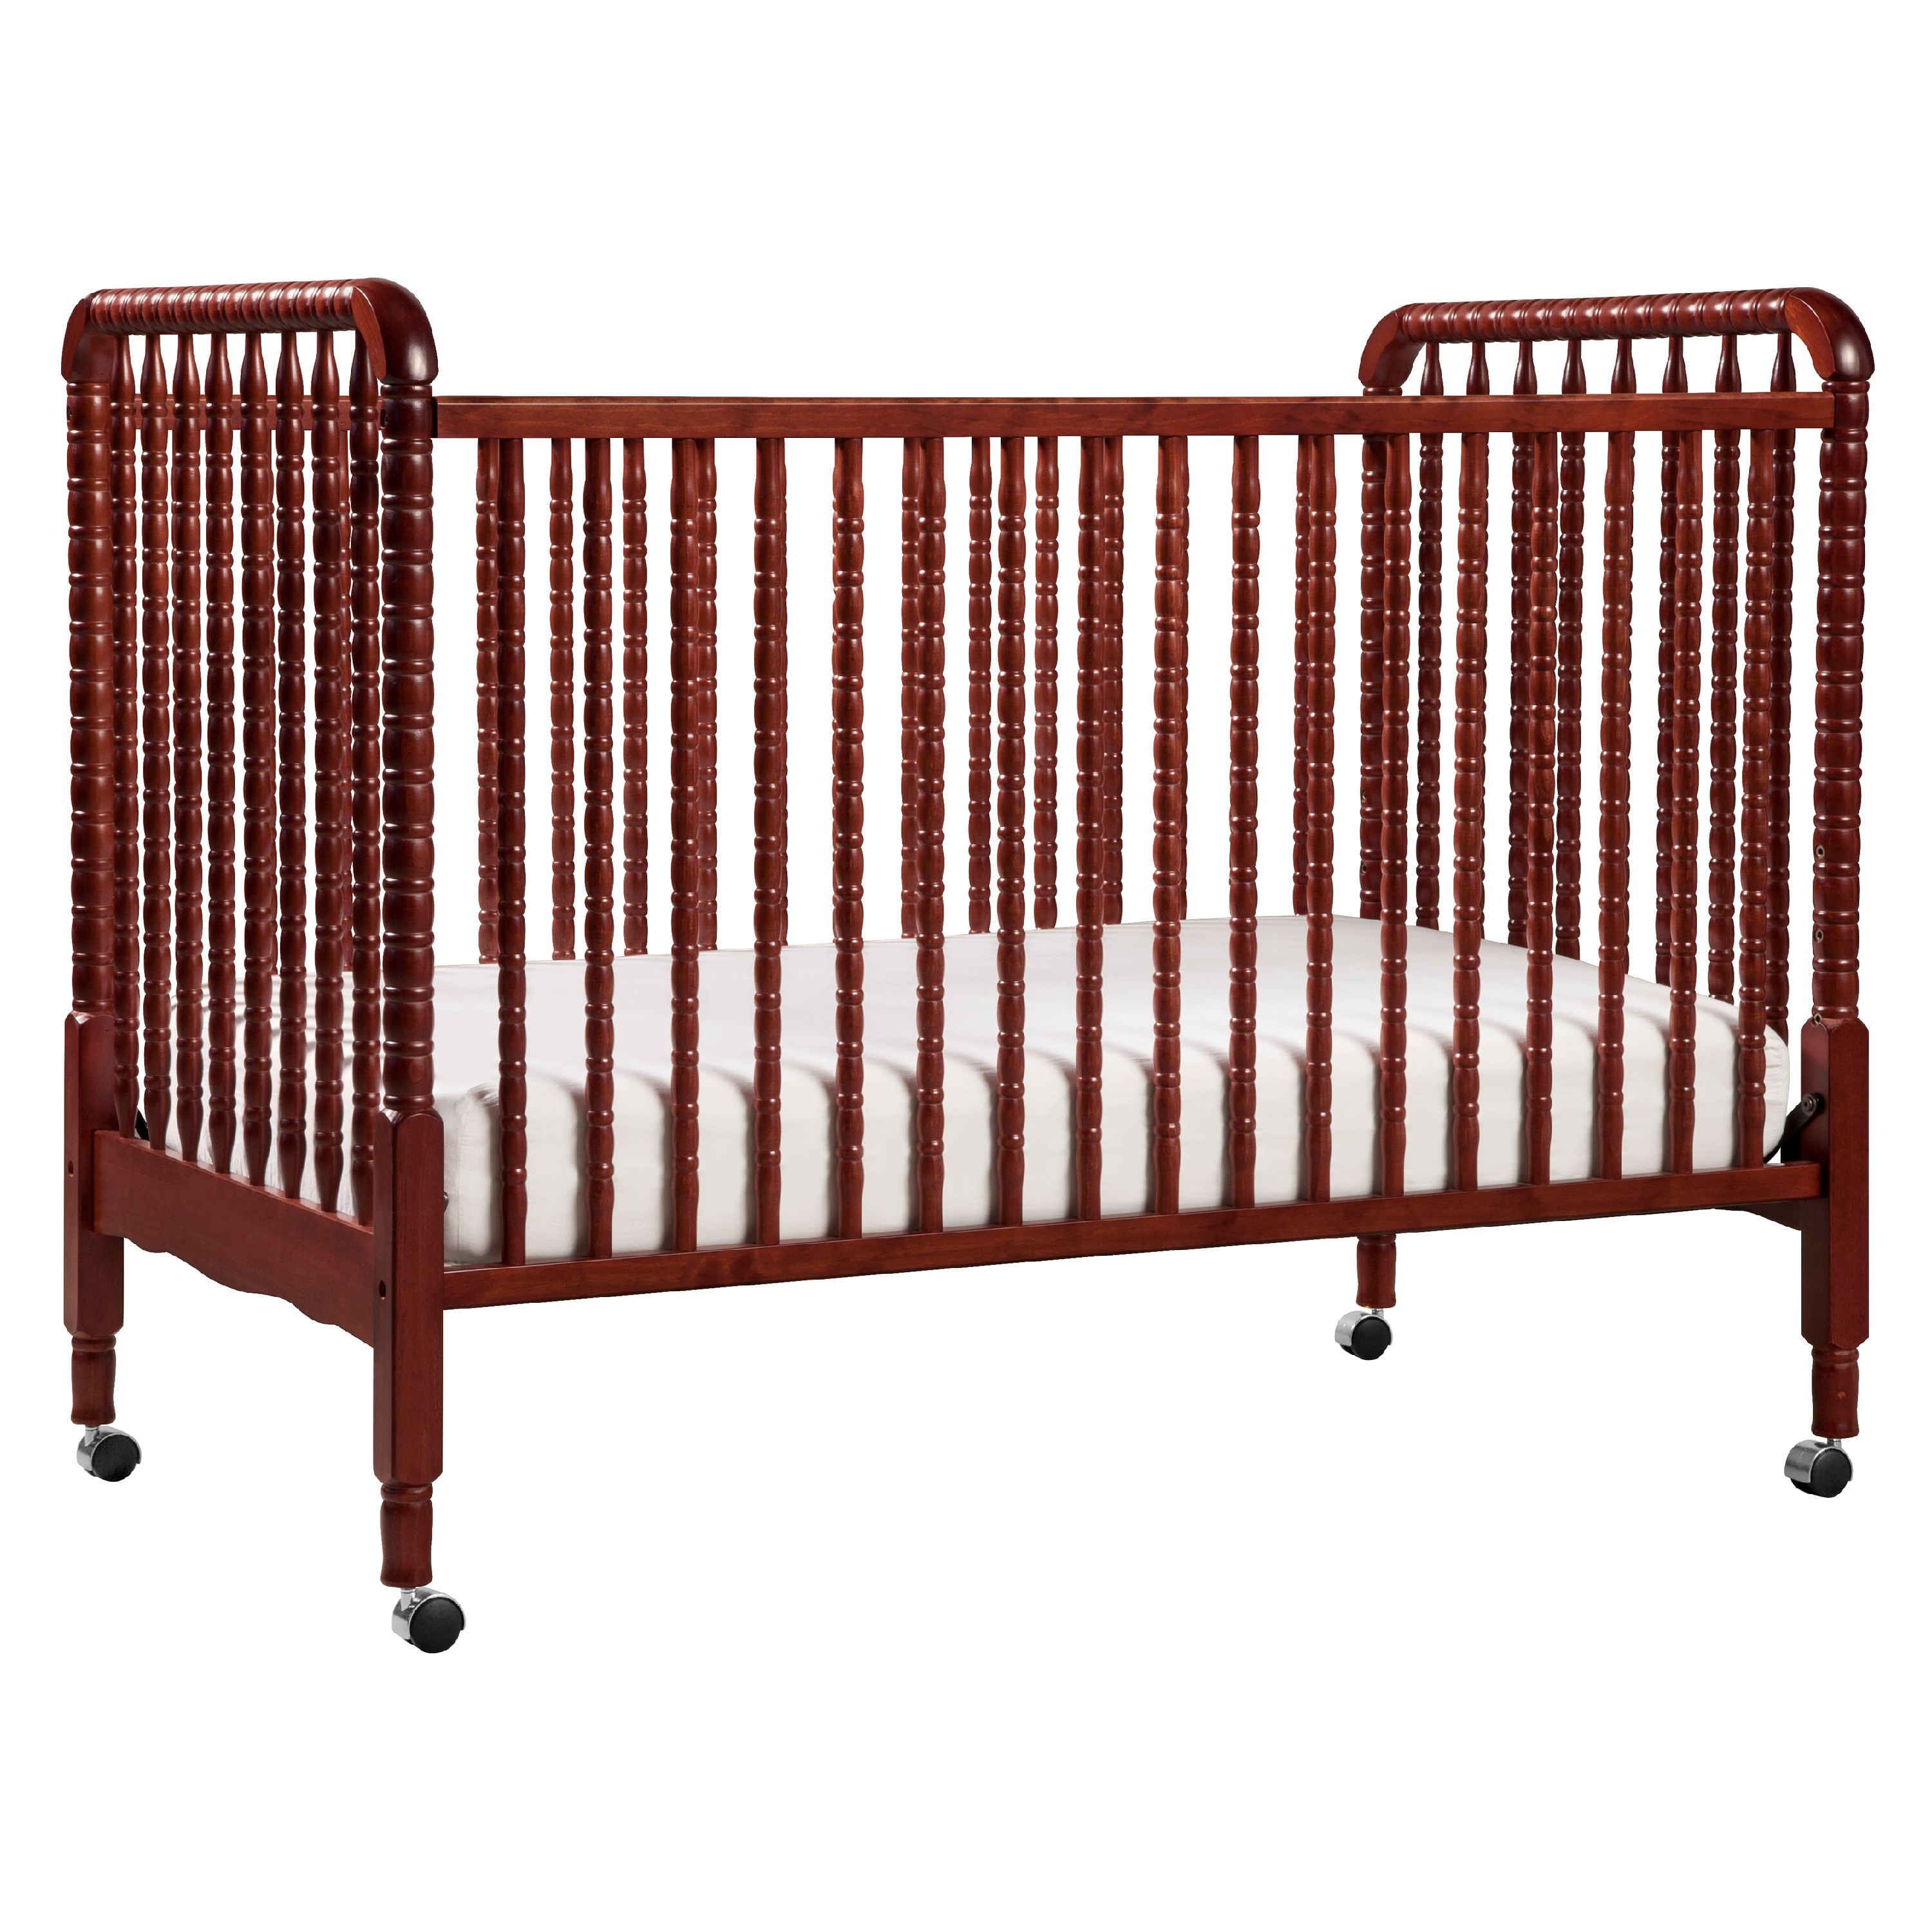 DaVinci Jenny Lind 3-in-1 Convertible Crib in Rich Cherry Finish by DaVinci Baby